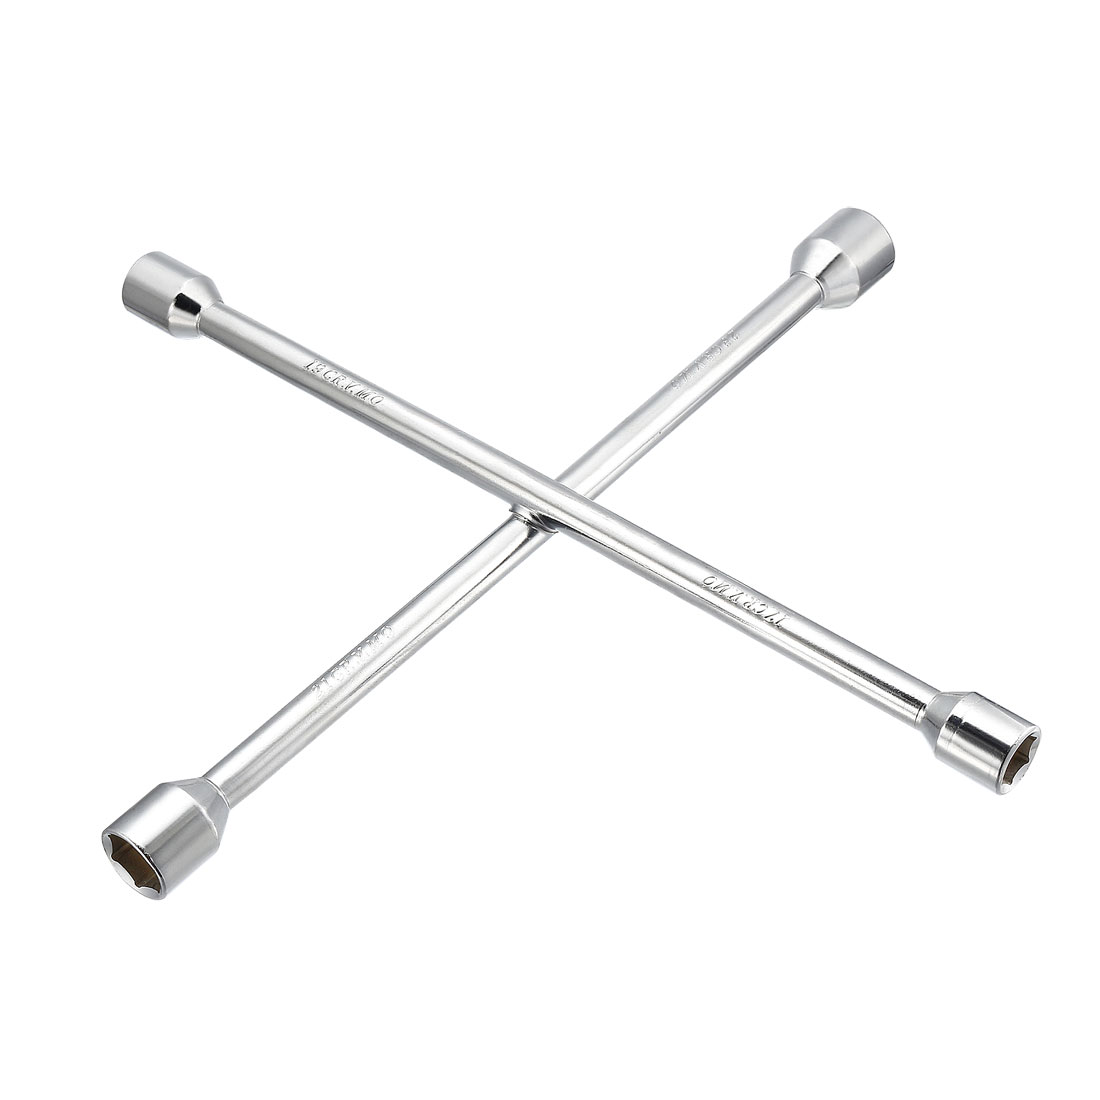 Lug Wrench - 16-inch Universal 4-Way Cross Socket Spanner - Car Tire Repair Tool